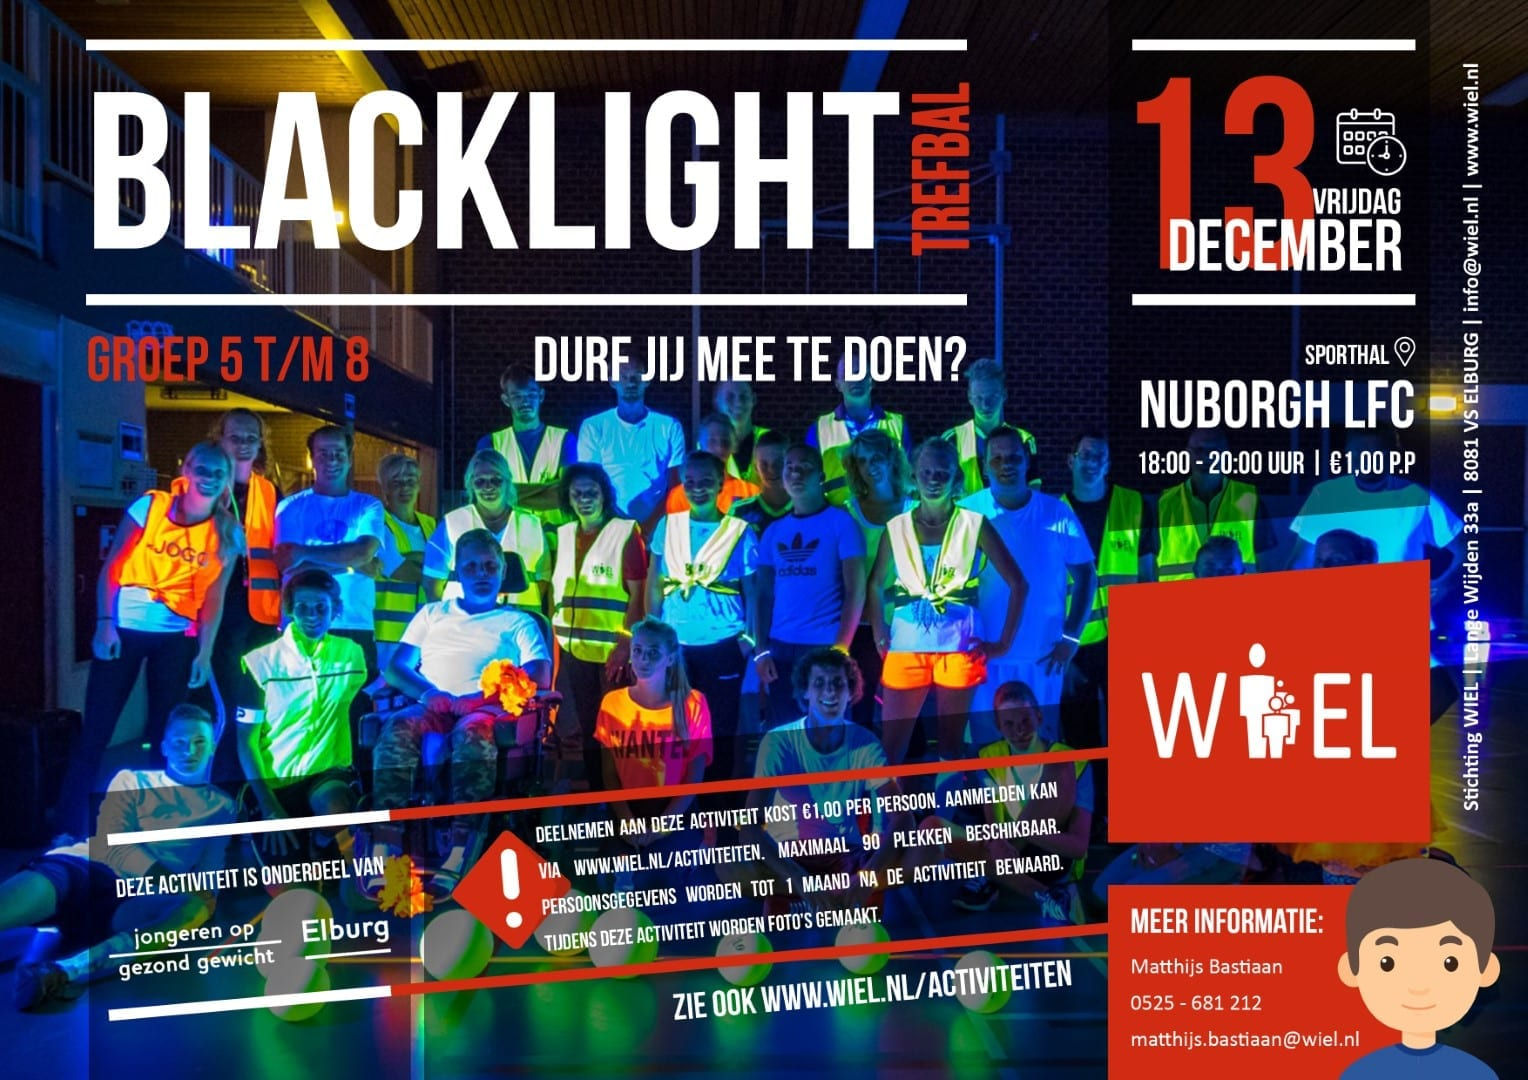 Blacklight Trefbal